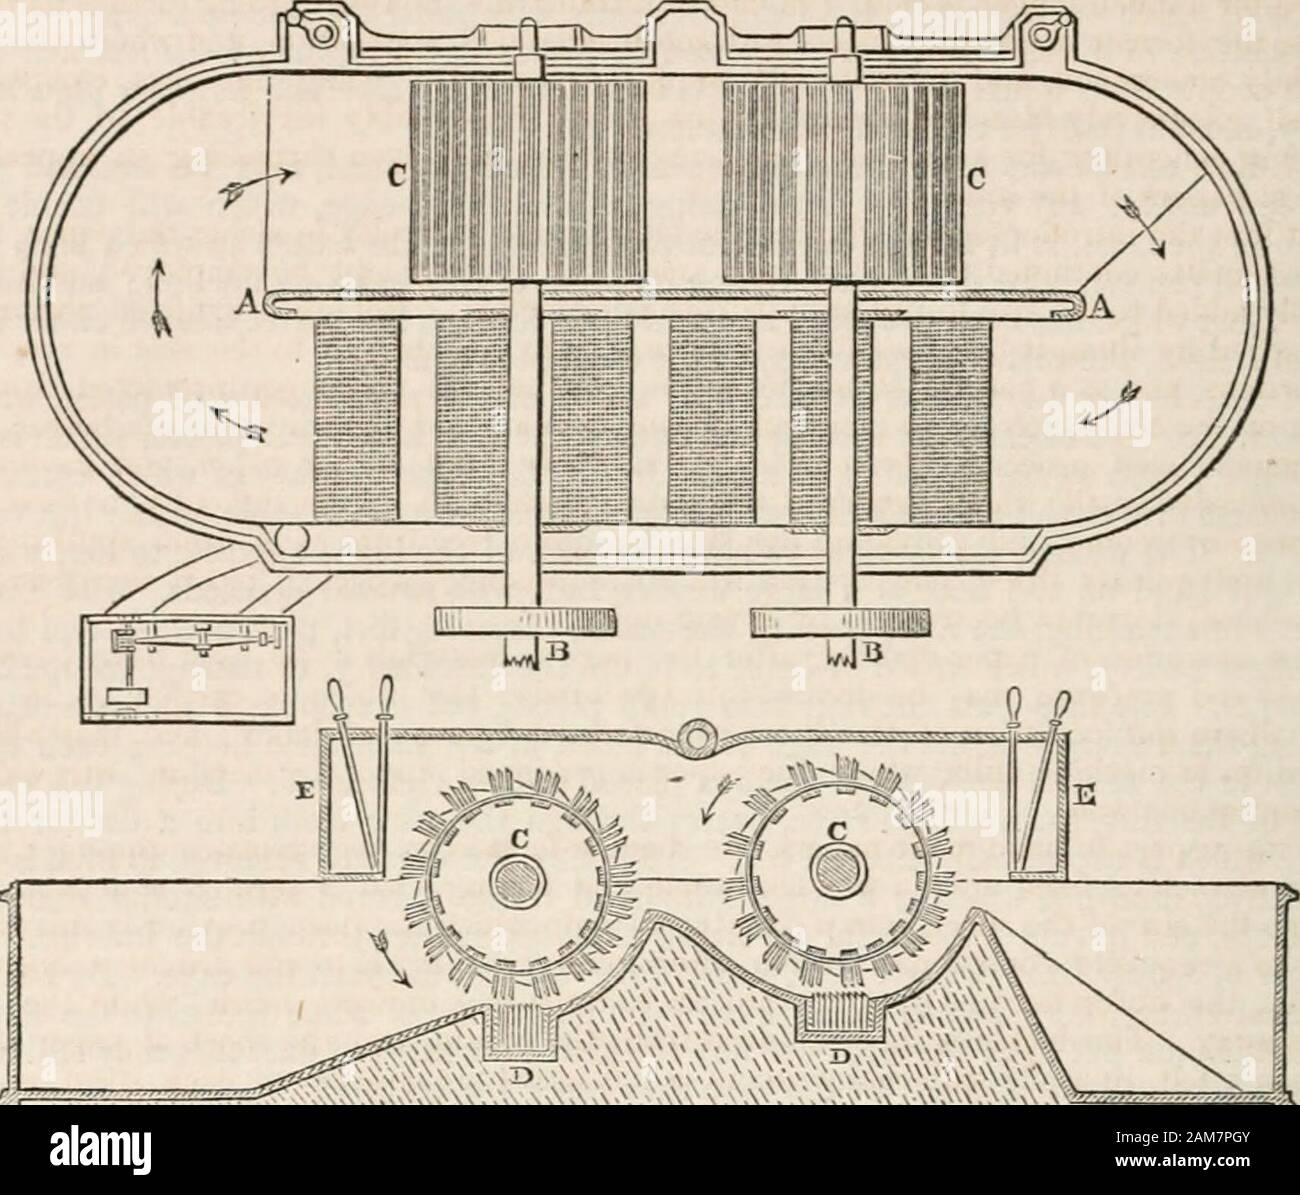 traverse engine diagram a supplement to ures dictionary of arts  manufactures  and mines  ures dictionary of arts  manufactures